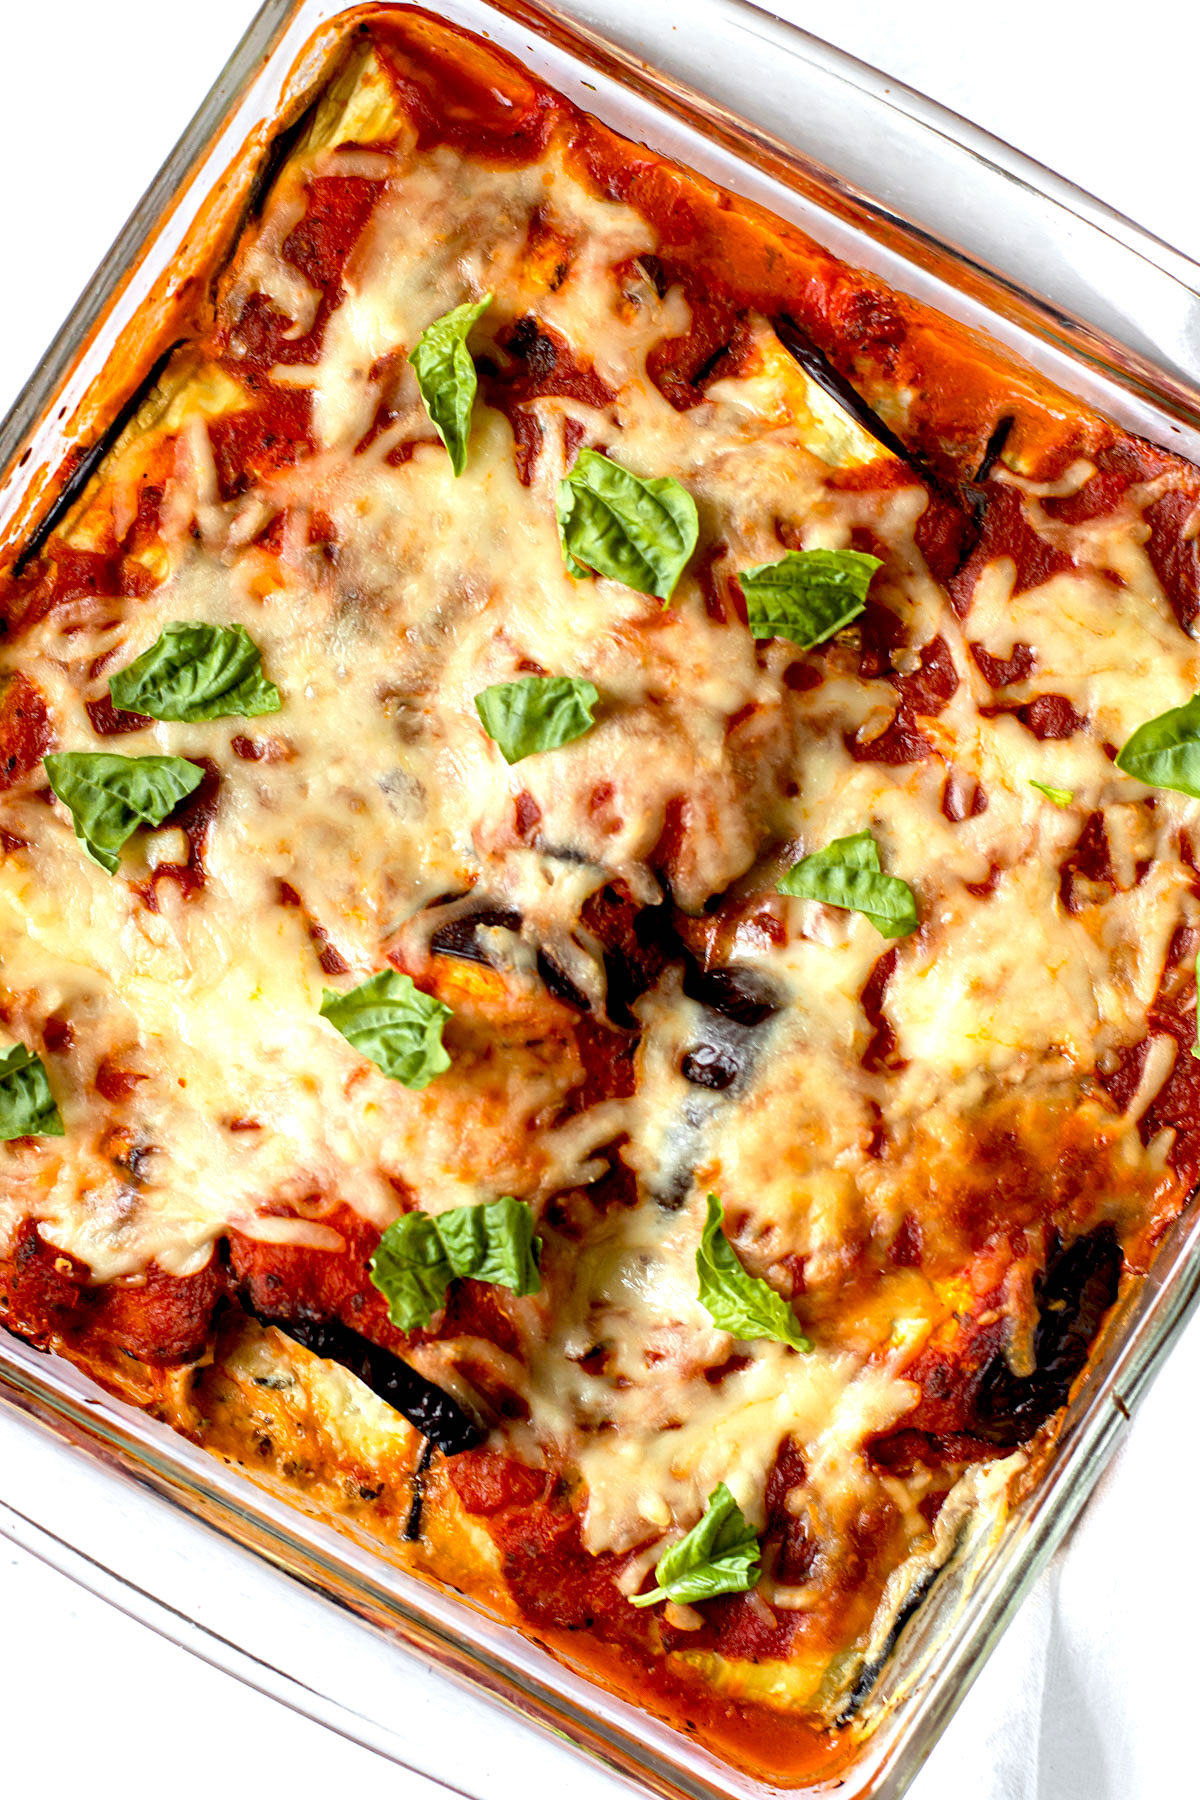 Eggplant rollatini bake with melty cheese and basil.